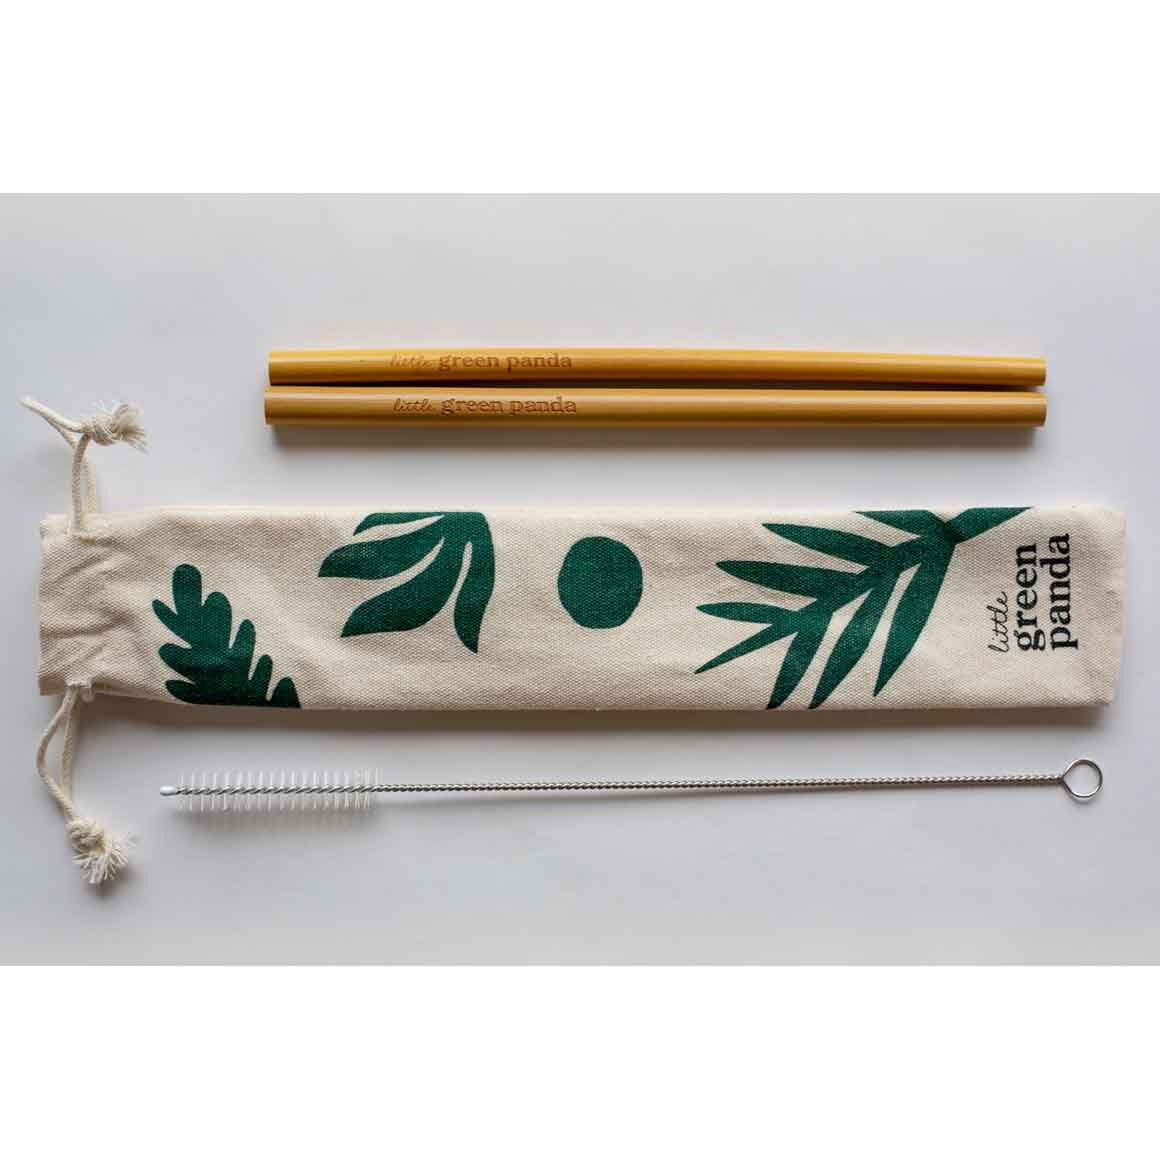 2 Bamboo Straws 1 Cleaning Brush Travel Pouch | Trada Marketplace